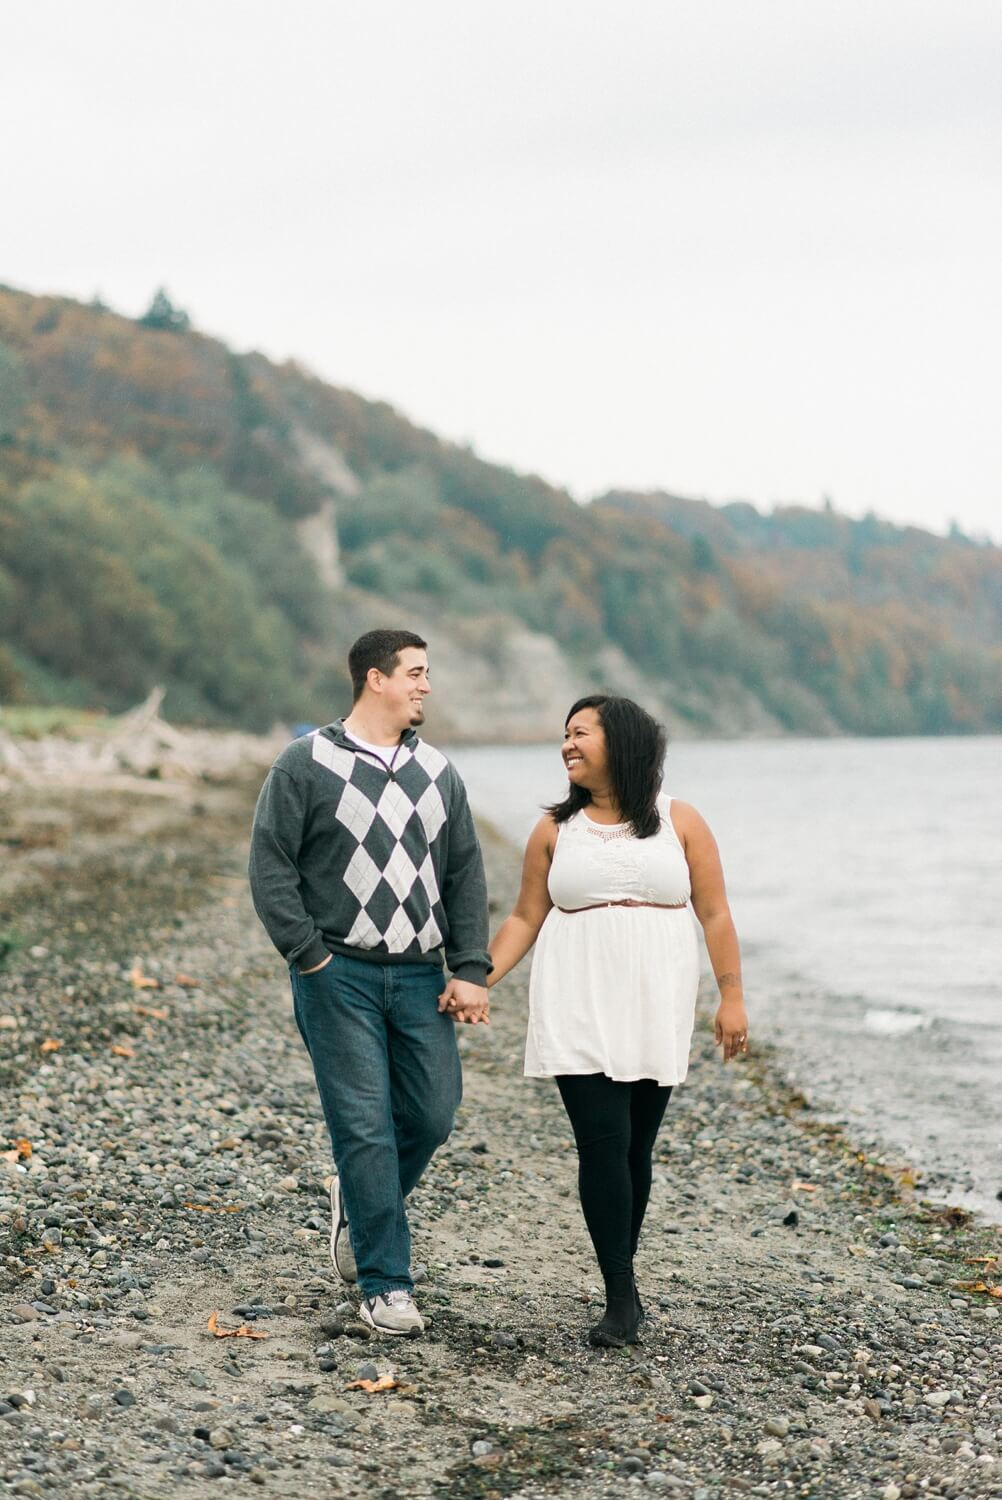 seattle-beach-engagement-photography-west-point-lighthouse-discovery-park-shelley-marie-photo-681_cr.jpg